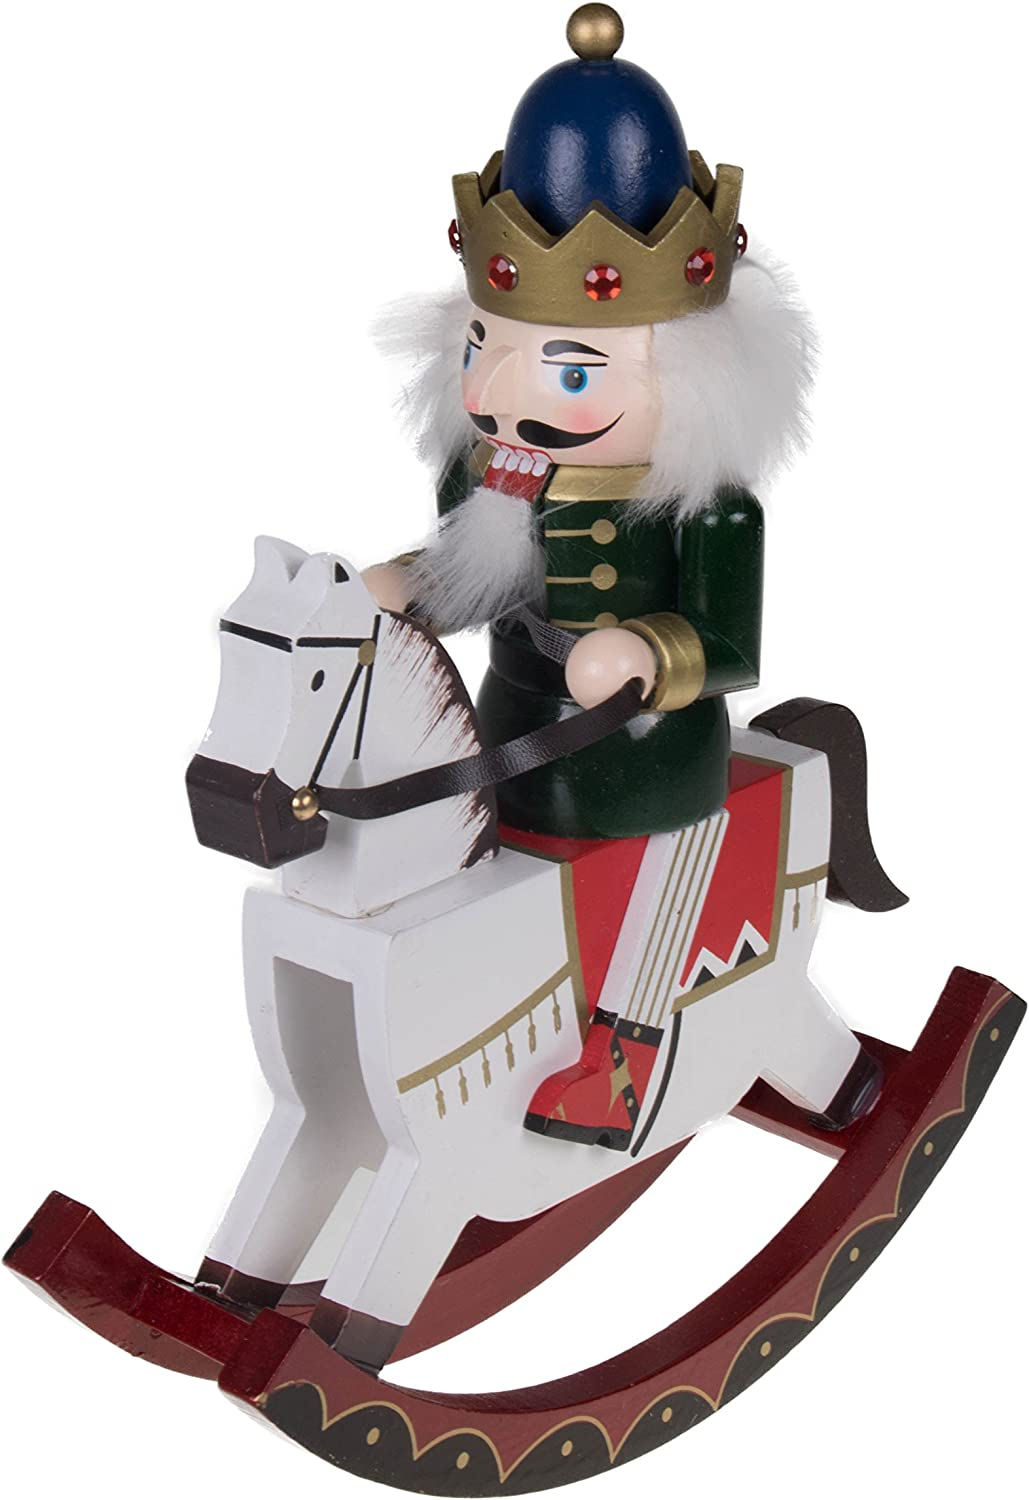 "Clever Creations King Nutcracker Rocking Horse Collectible Wooden Christmas Nutcracker | Festive Holiday Decor | Riding White Rocking Horse | 100% Wood | 12"" Tall (Blue and Gold)"